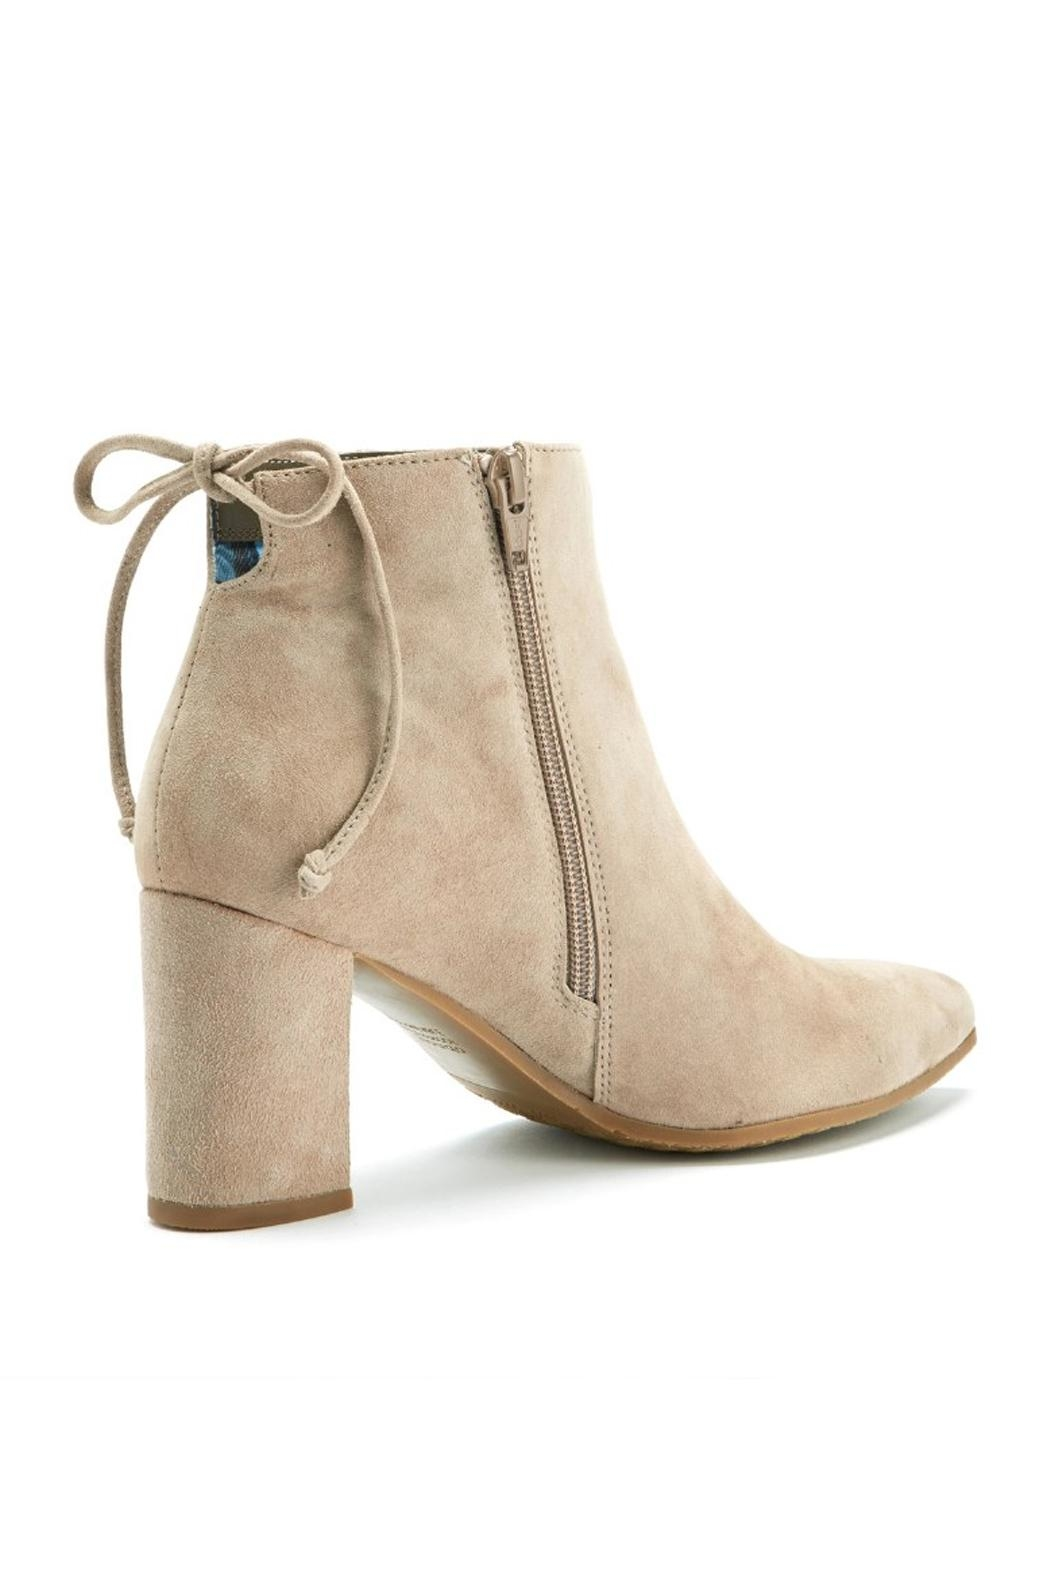 Blondo Tiana Waterproof Bootie - Front Full Image